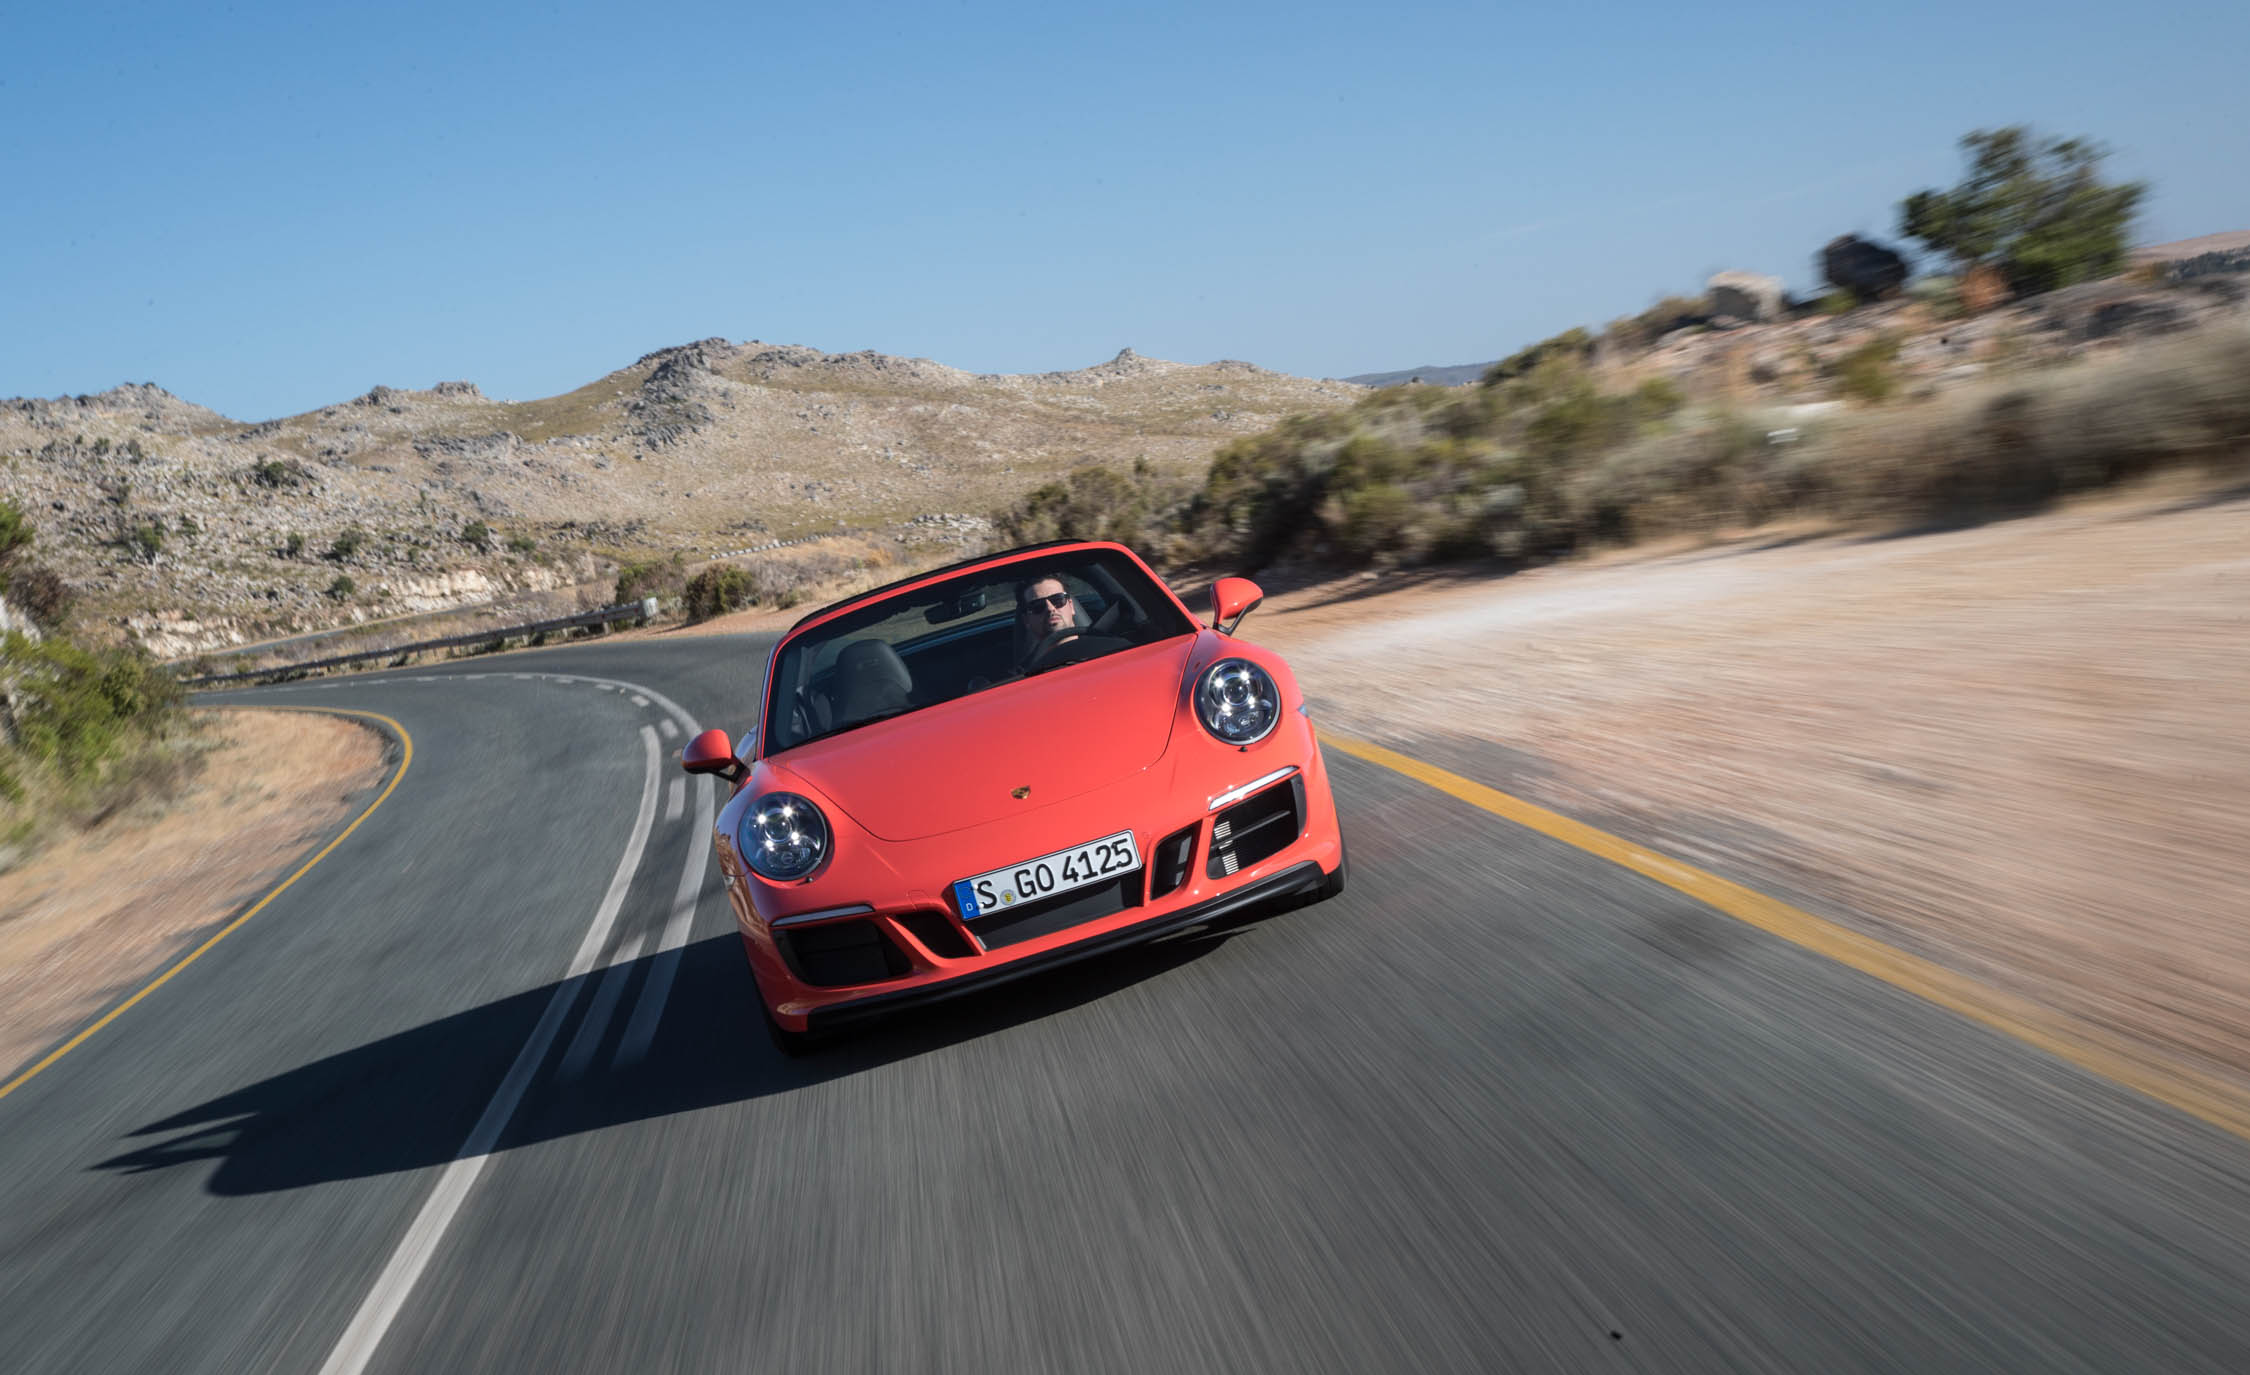 2017 Porsche 911 Targa 4 GTS Test Drive Front View (Photo 93 of 97)